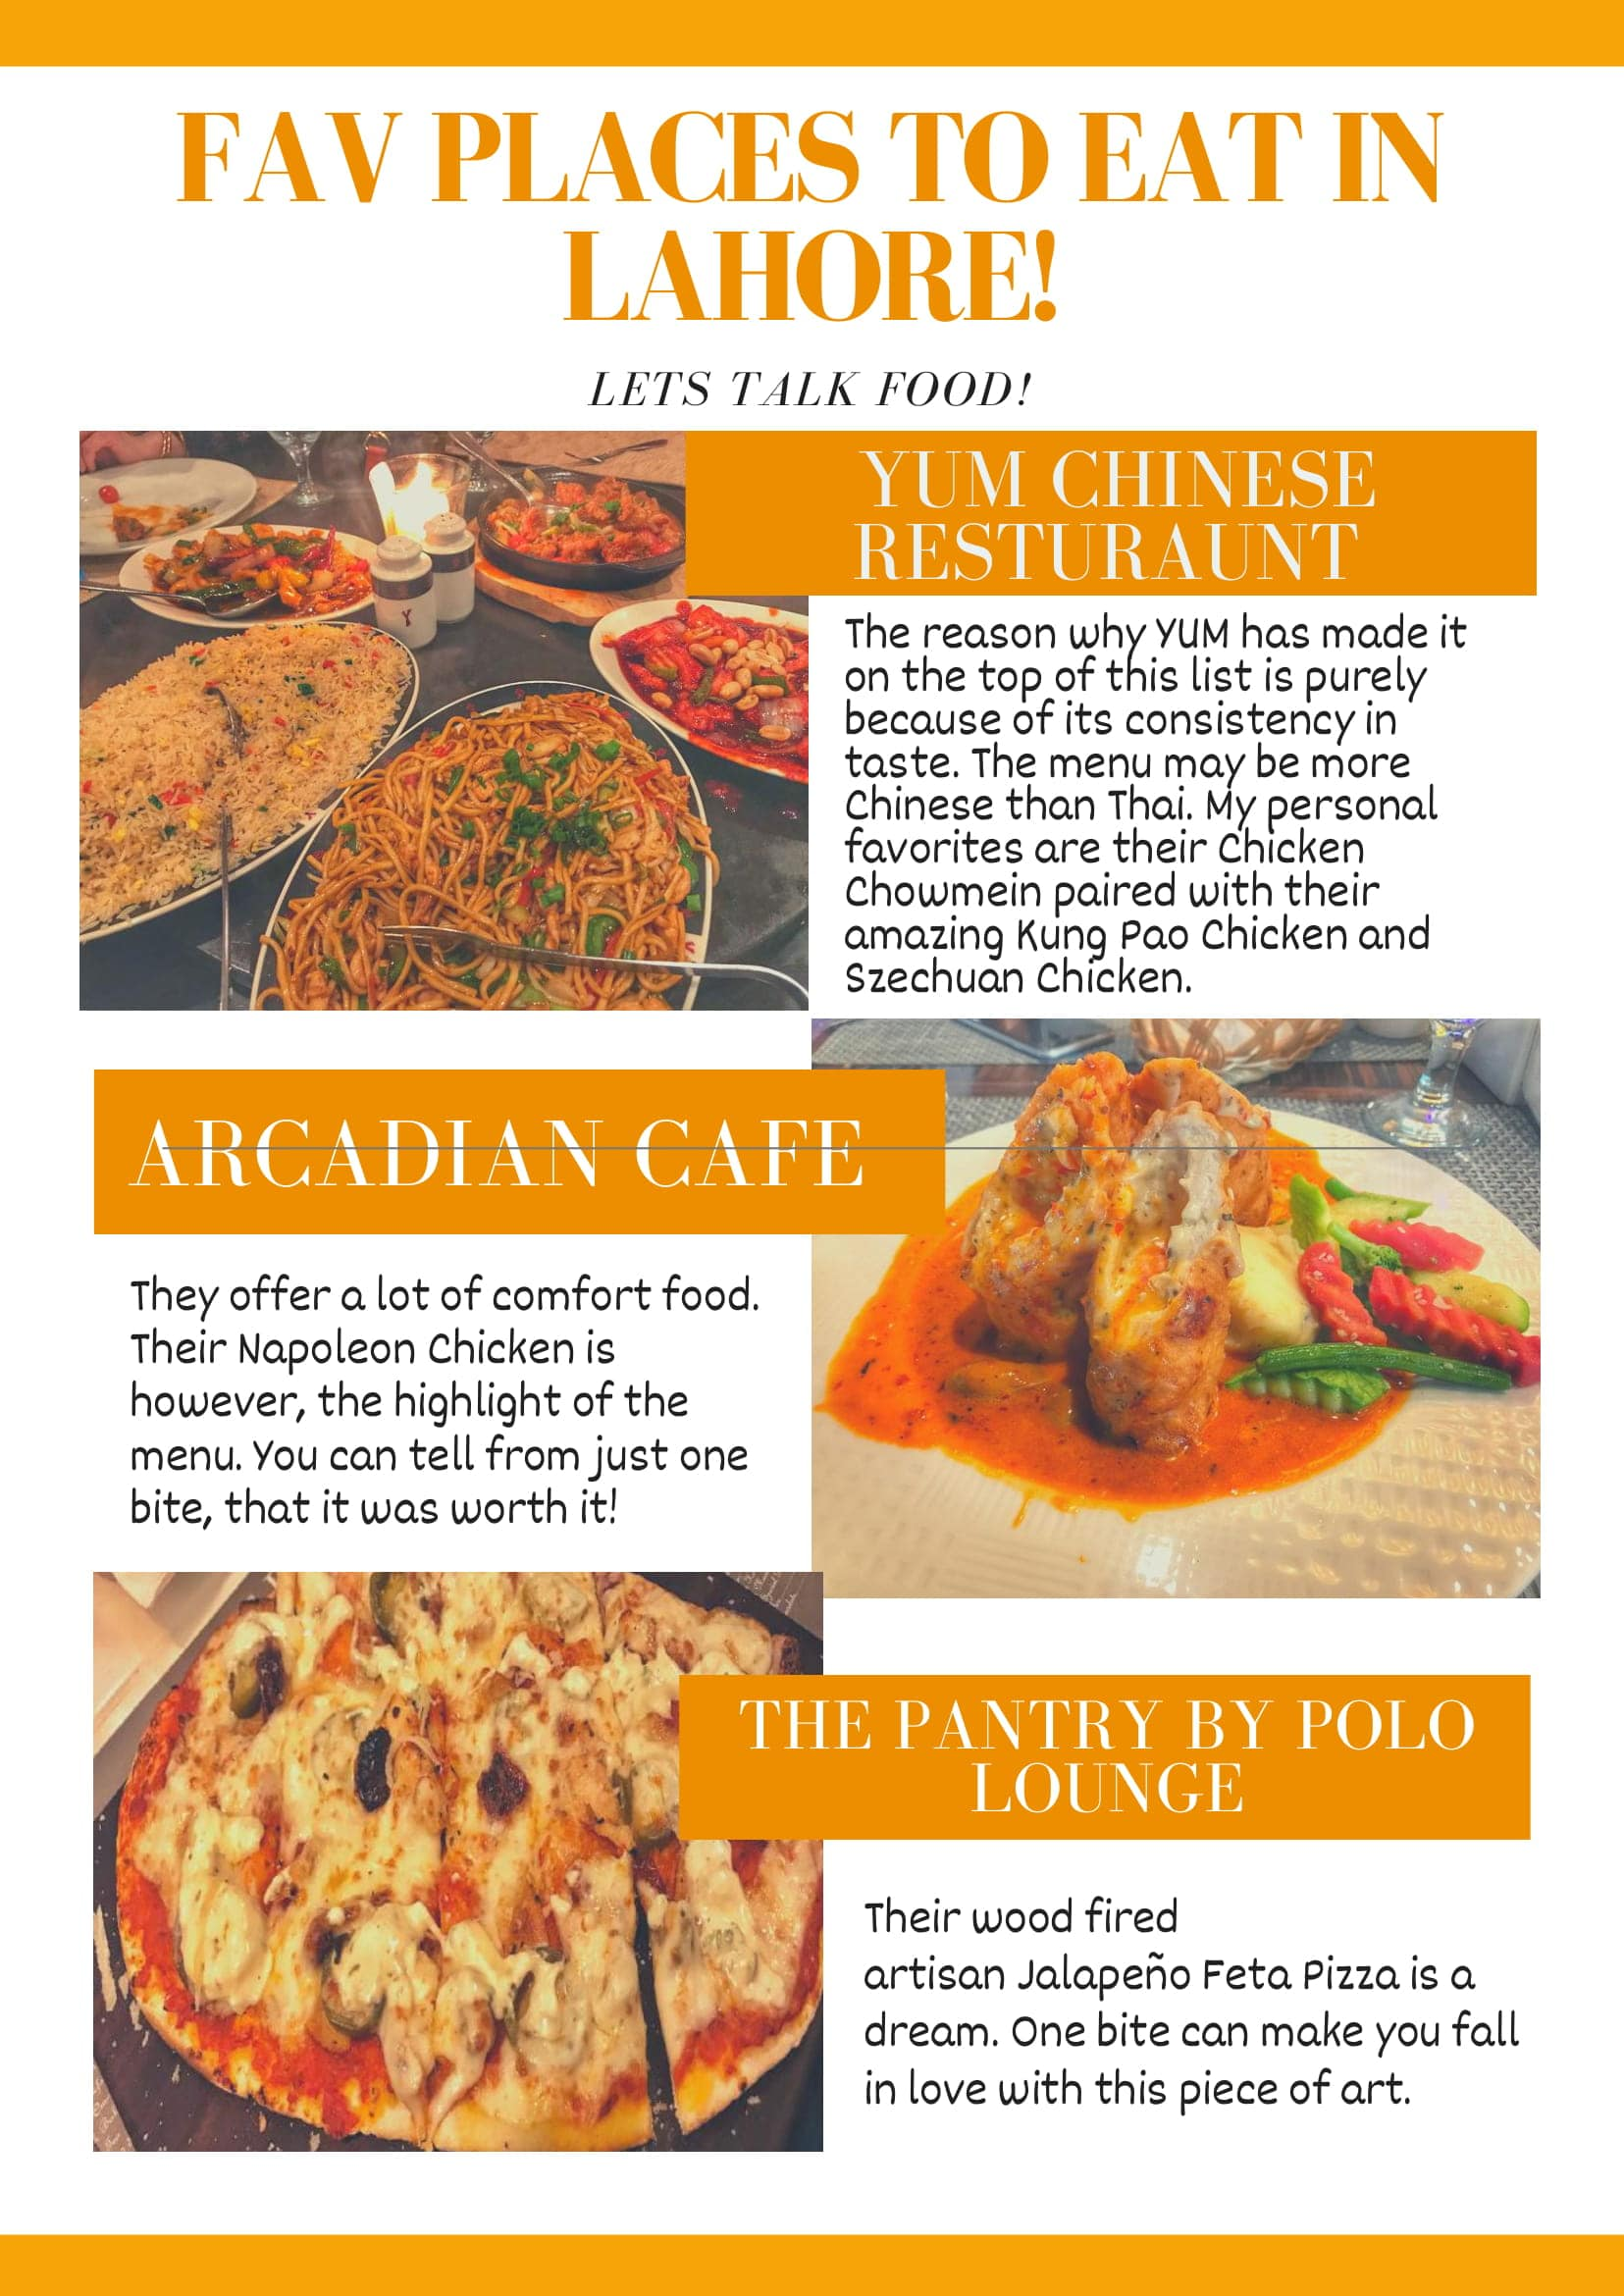 FAV PLACES TO EAT IN LAHORE!